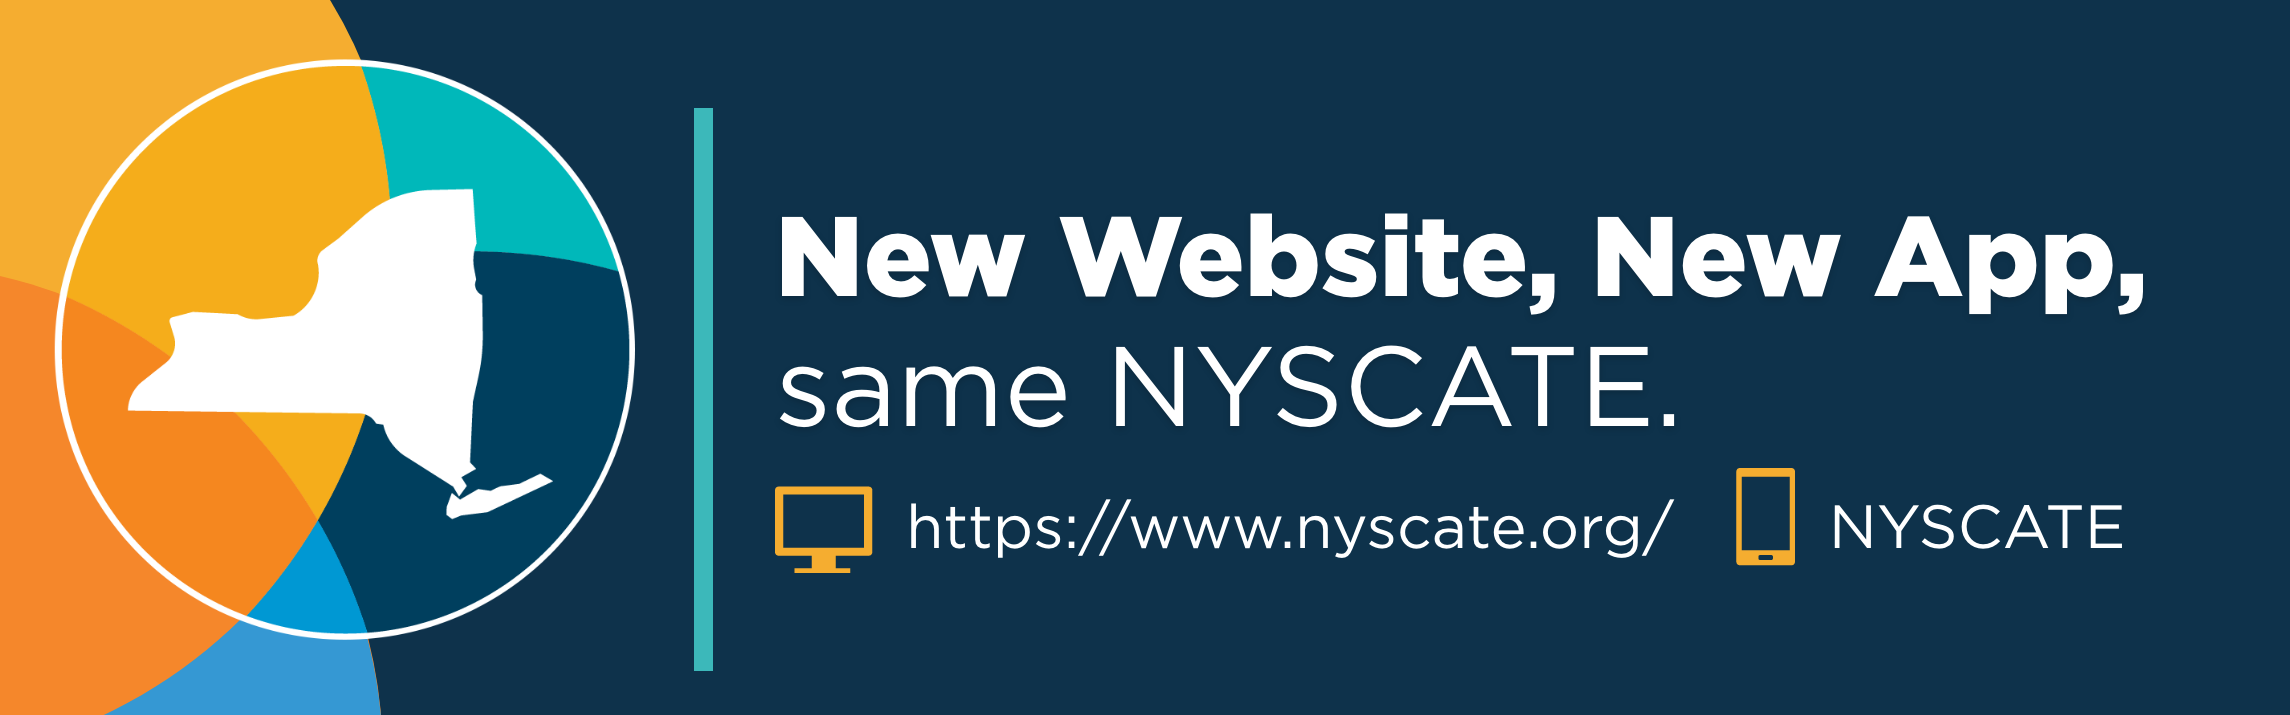 Download the NYSCATE app